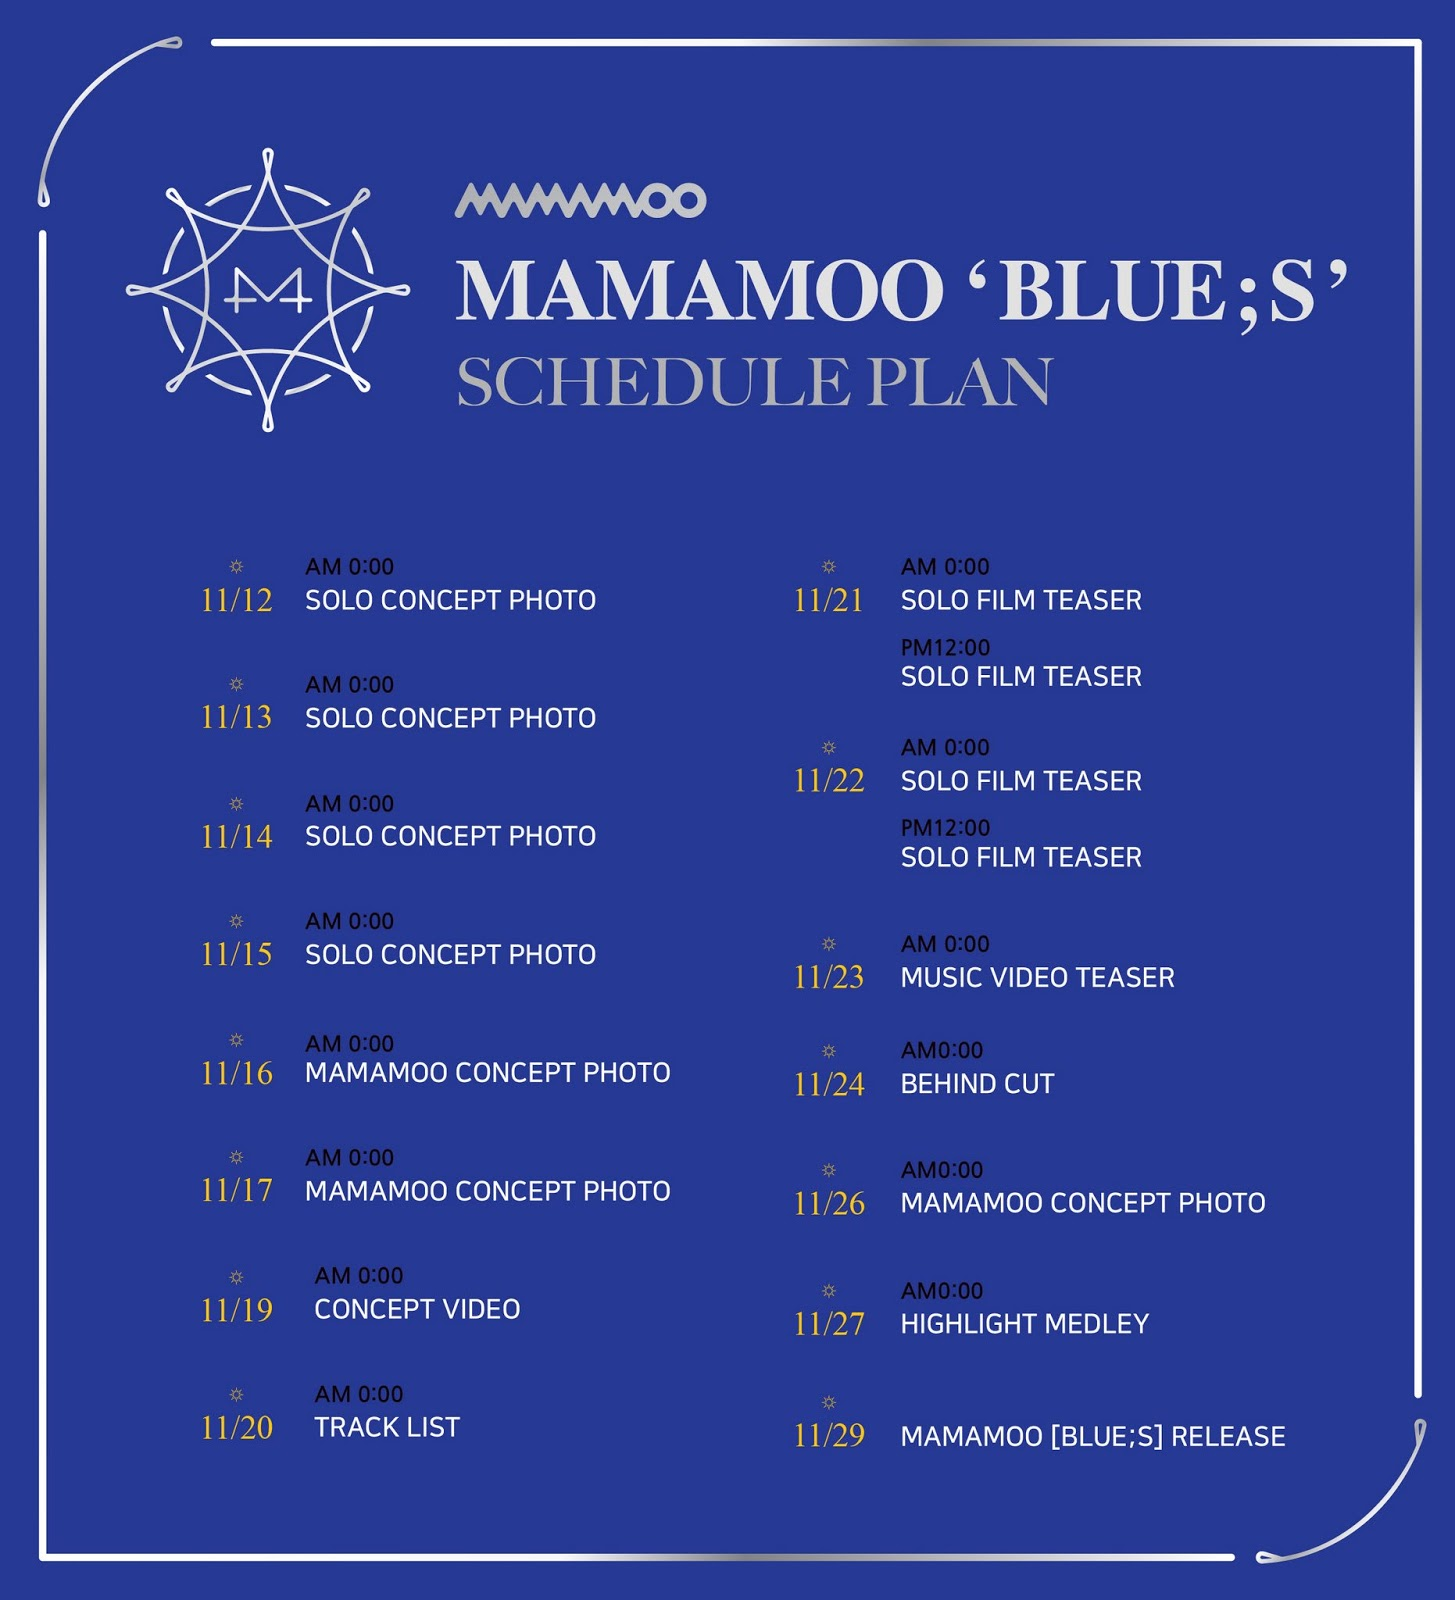 MAMAMOO Shares Schedule Plan For Their Upcoming Comeback